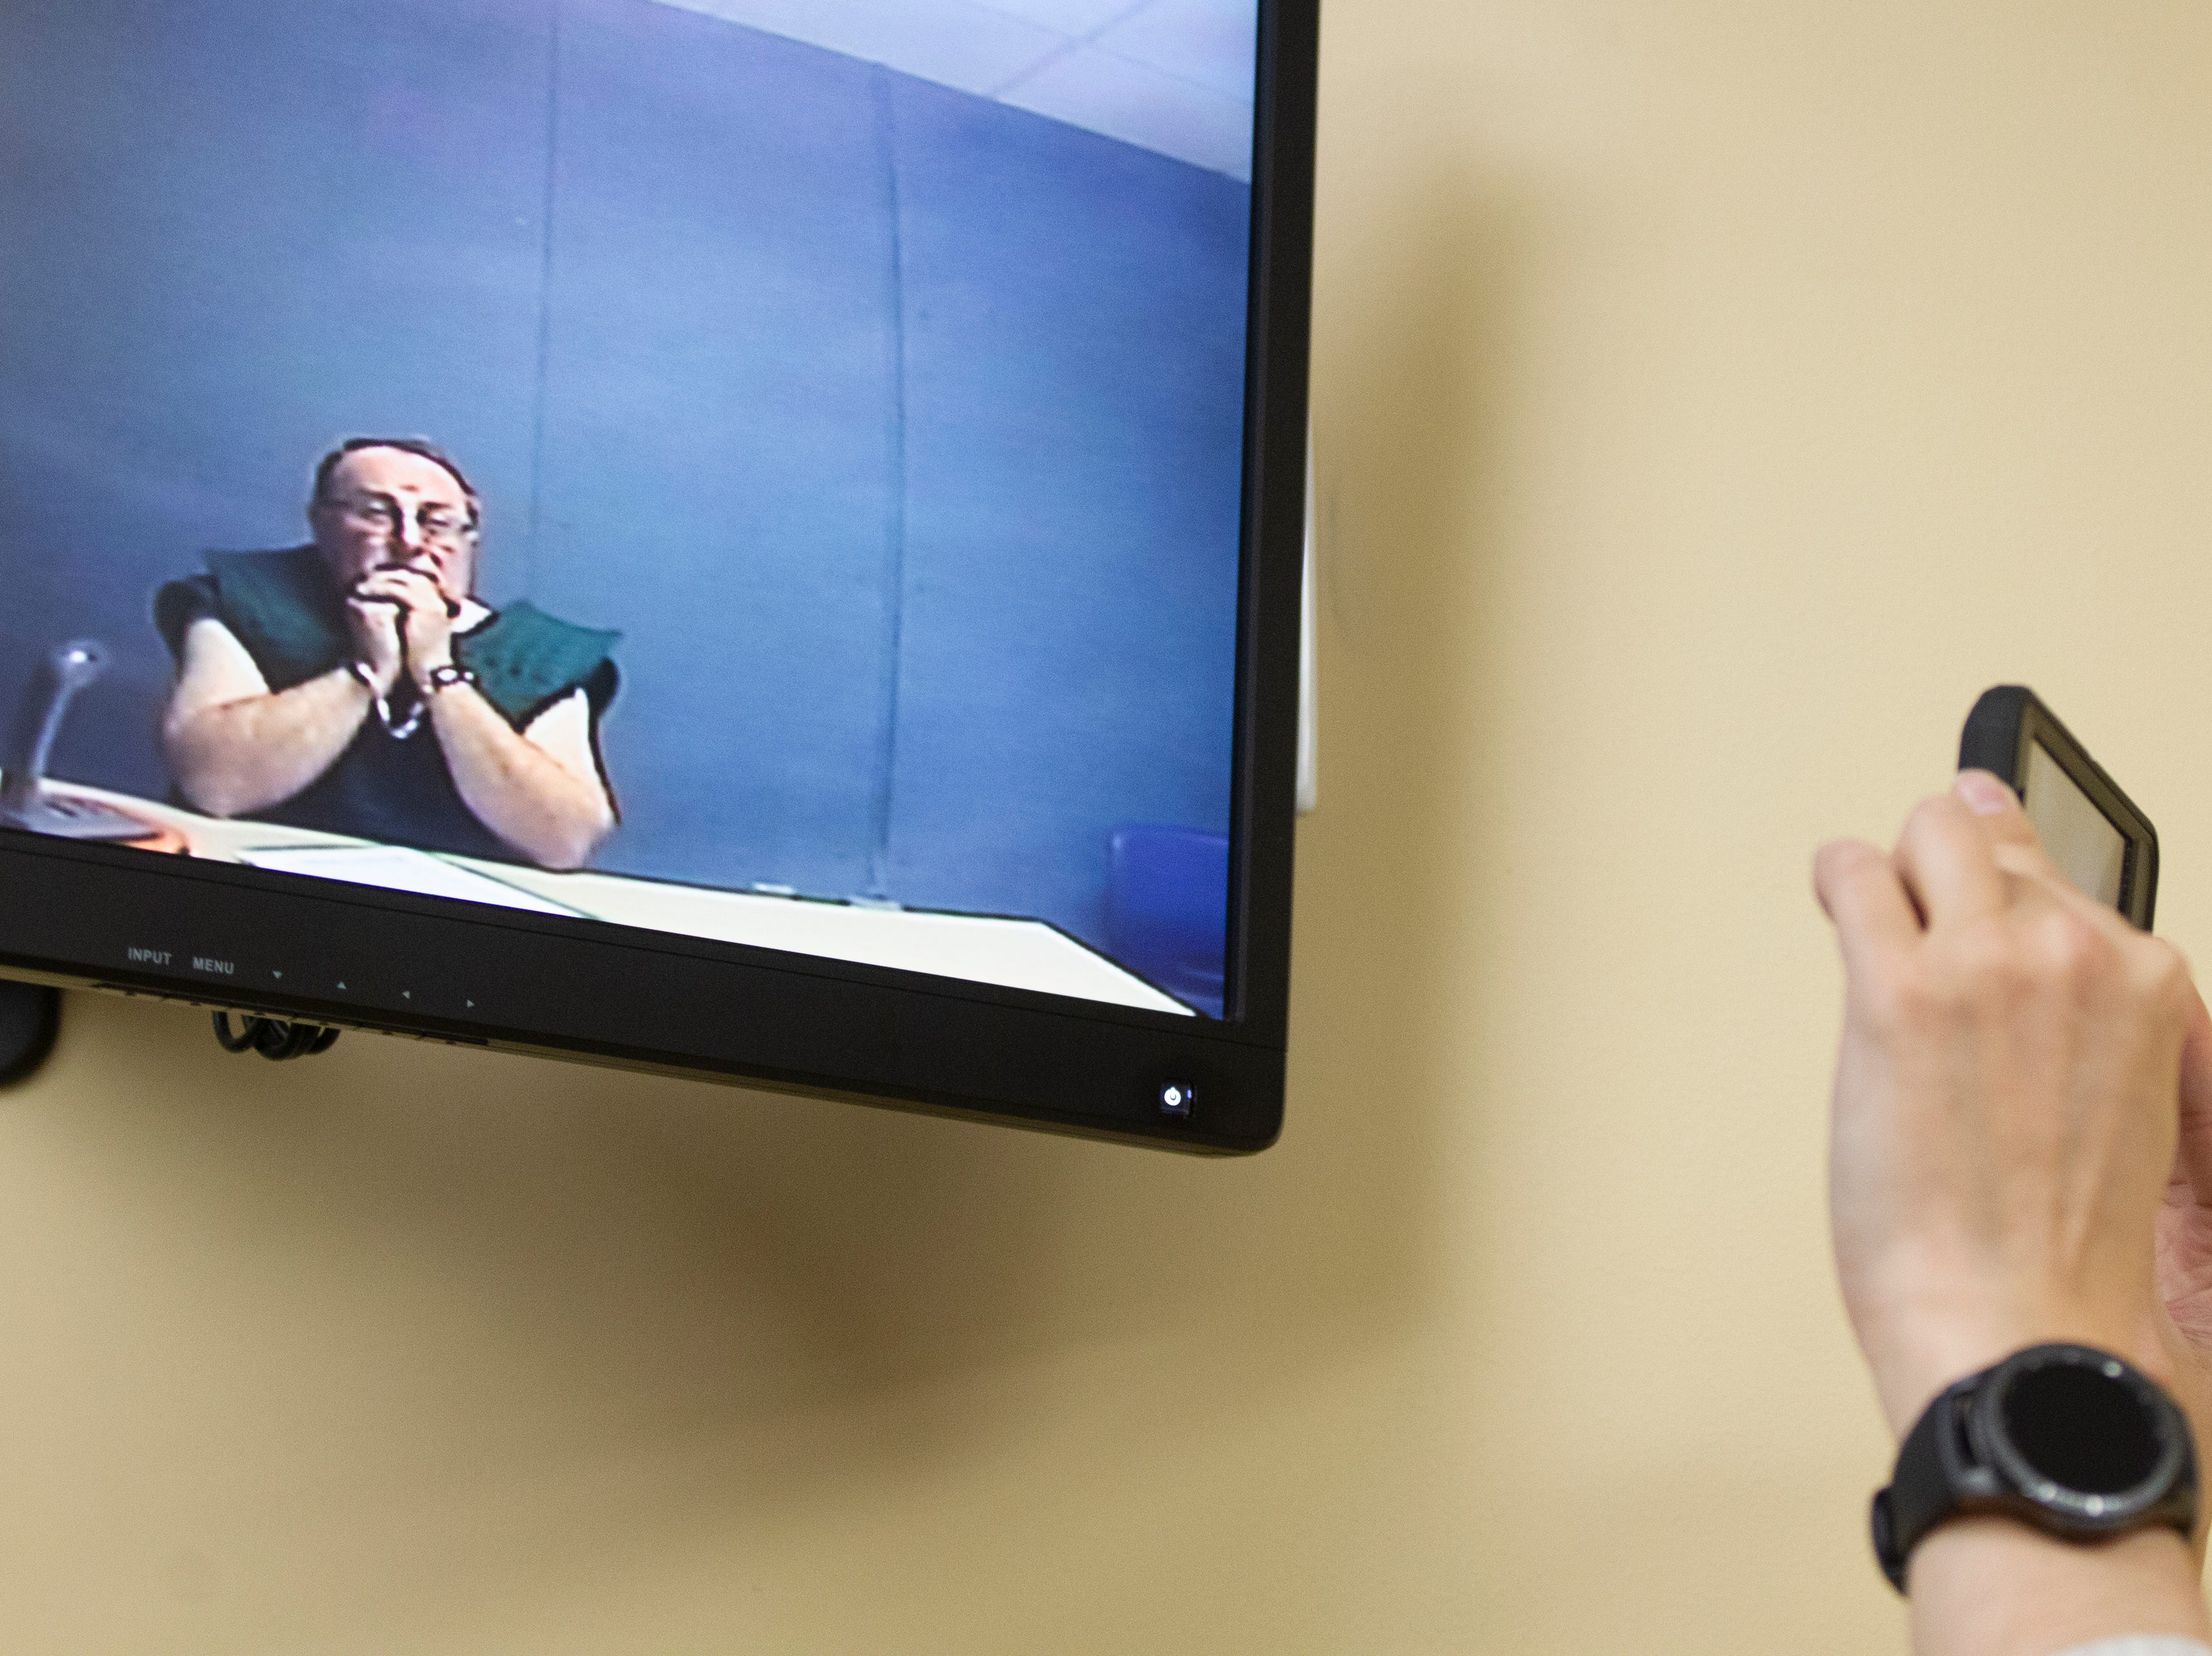 A TV reporter takes video of Jerry Lynn Burns during his initial appearance on a video monitor from the Linn County Jail on Thursday, Dec. 20, 2018, at the Linn County Courthouse in Cedar Rapids.